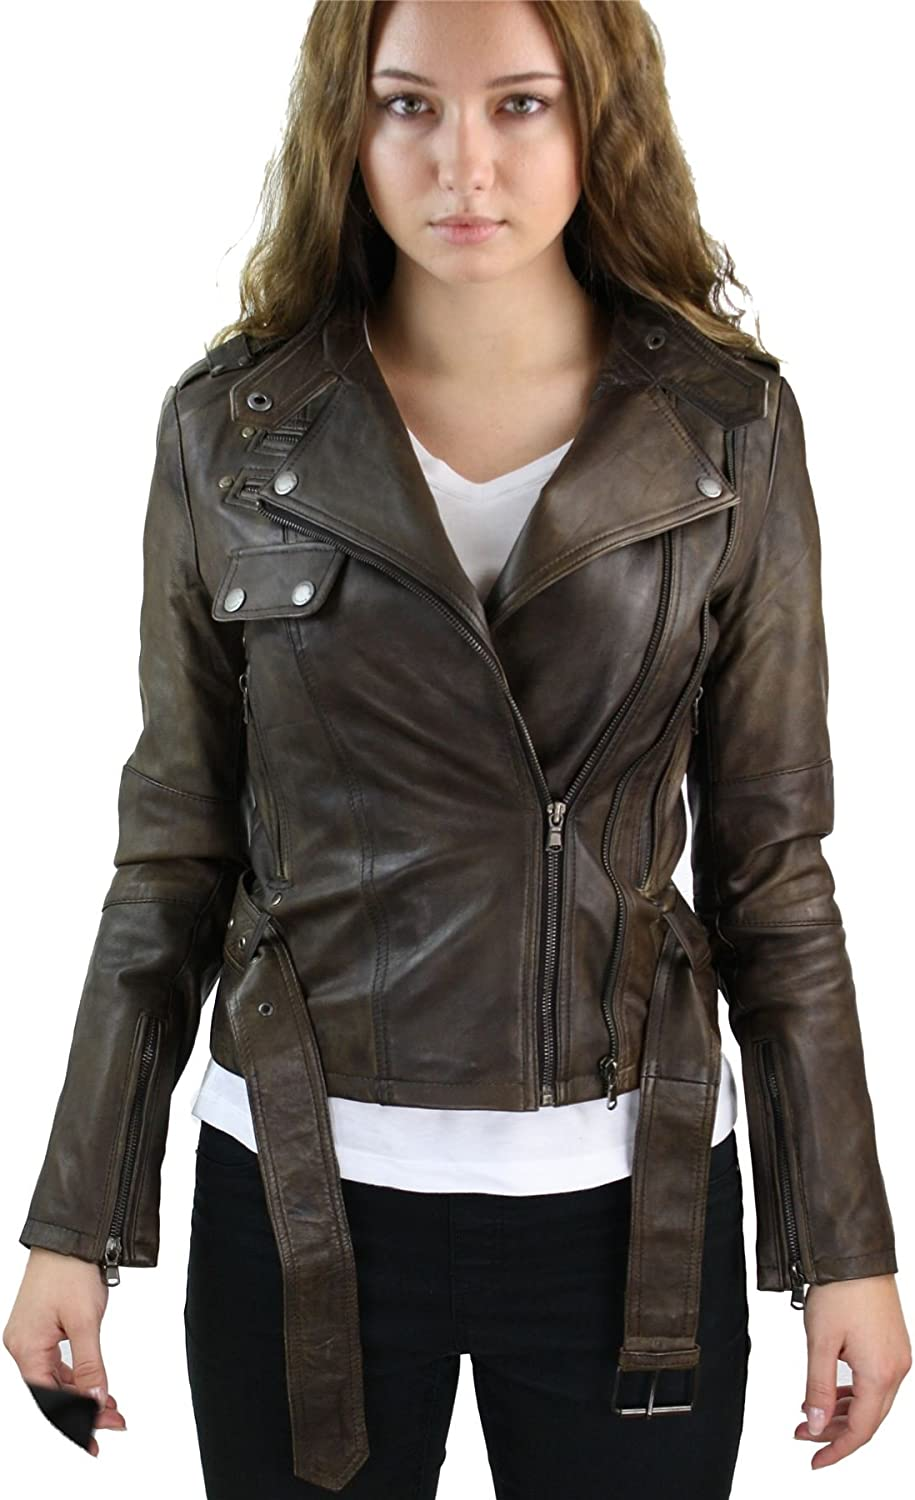 Aviatrix 100% Ladies Real Leather Jacket Fitted Bikers Style Vintage Brown Rock